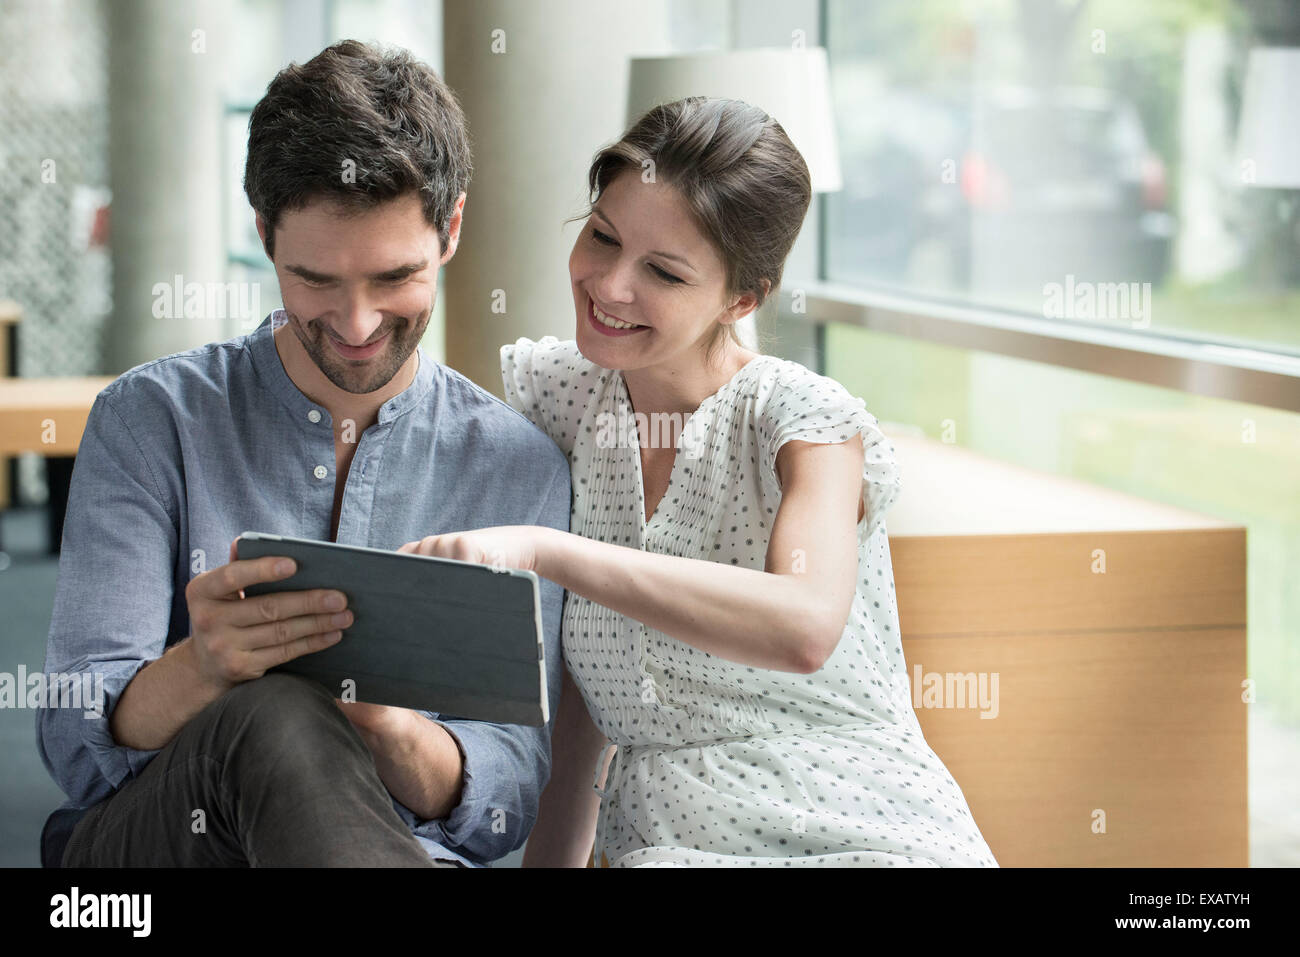 Couple using digital tablet together at home - Stock Image